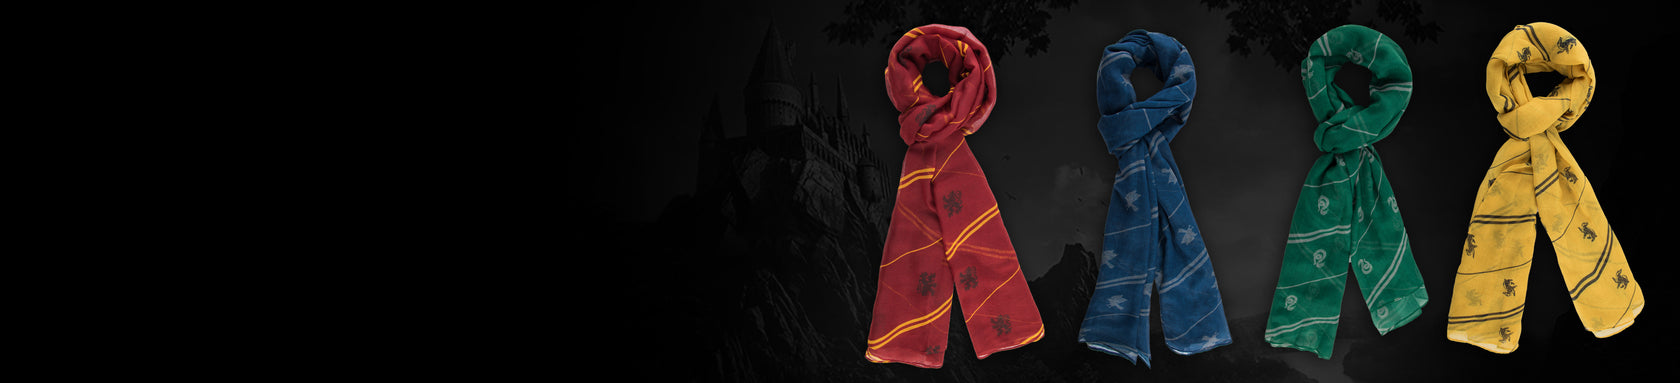 Foulard Harry Potter